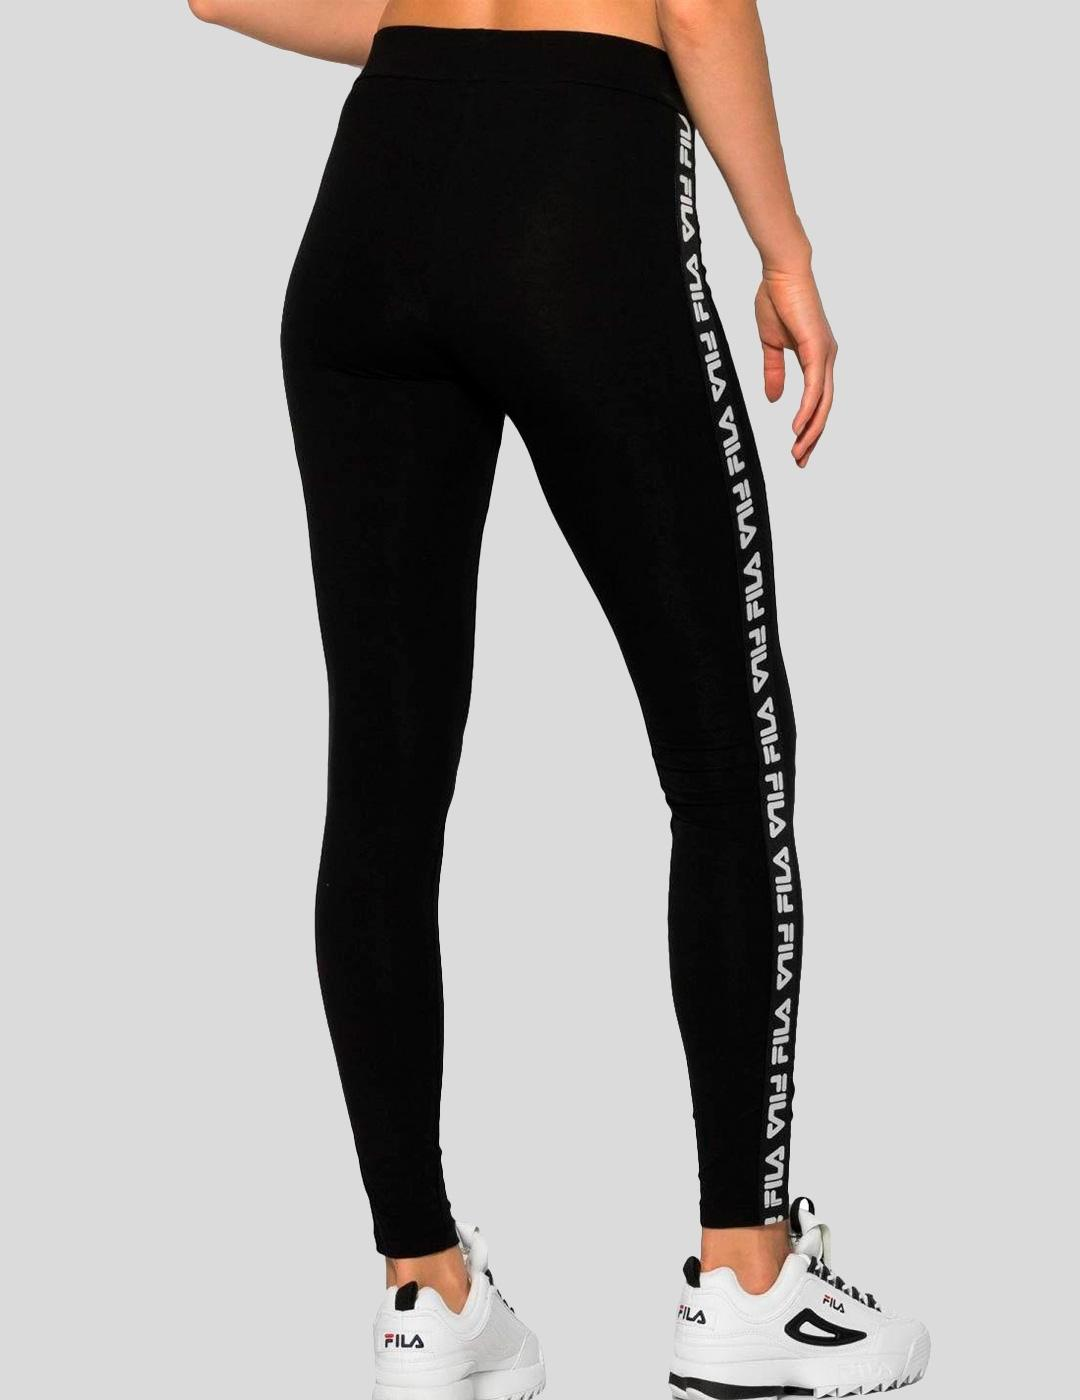 Leggins Fila PHILINE - Black